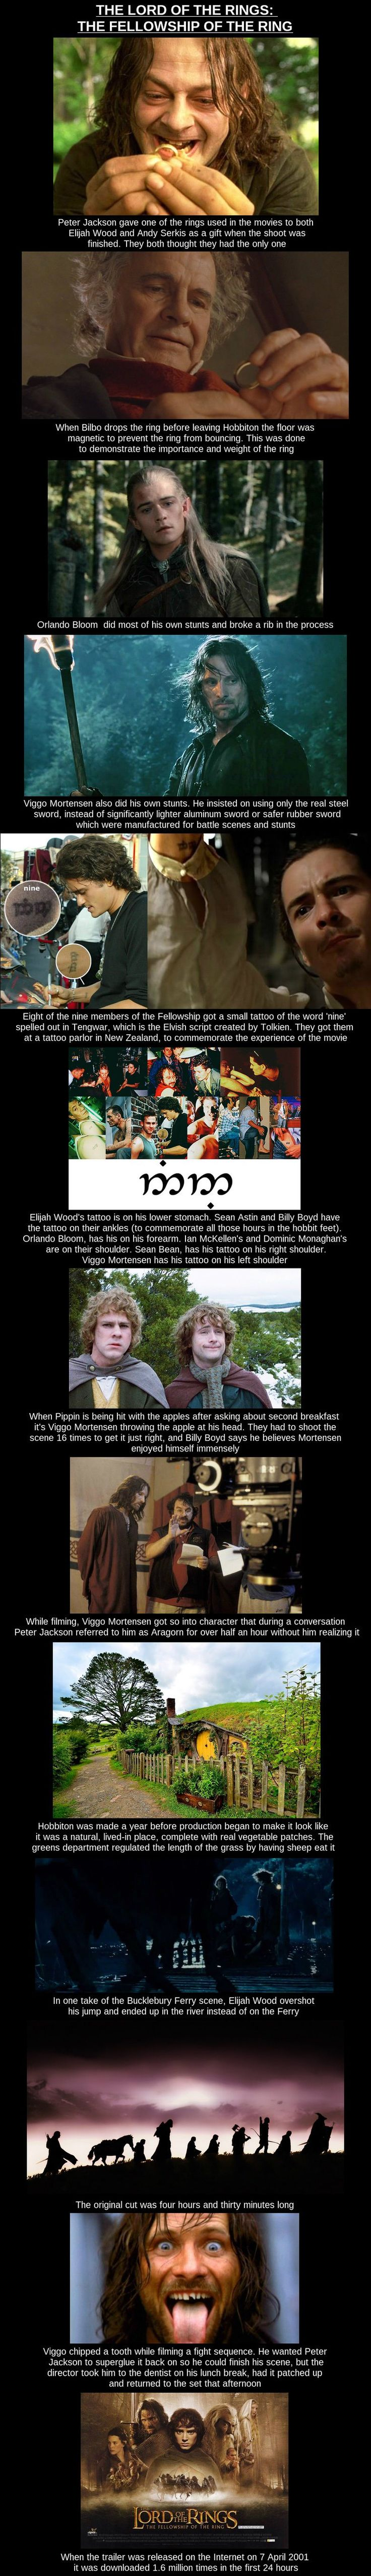 The Fellowship of the Ring Film Facts